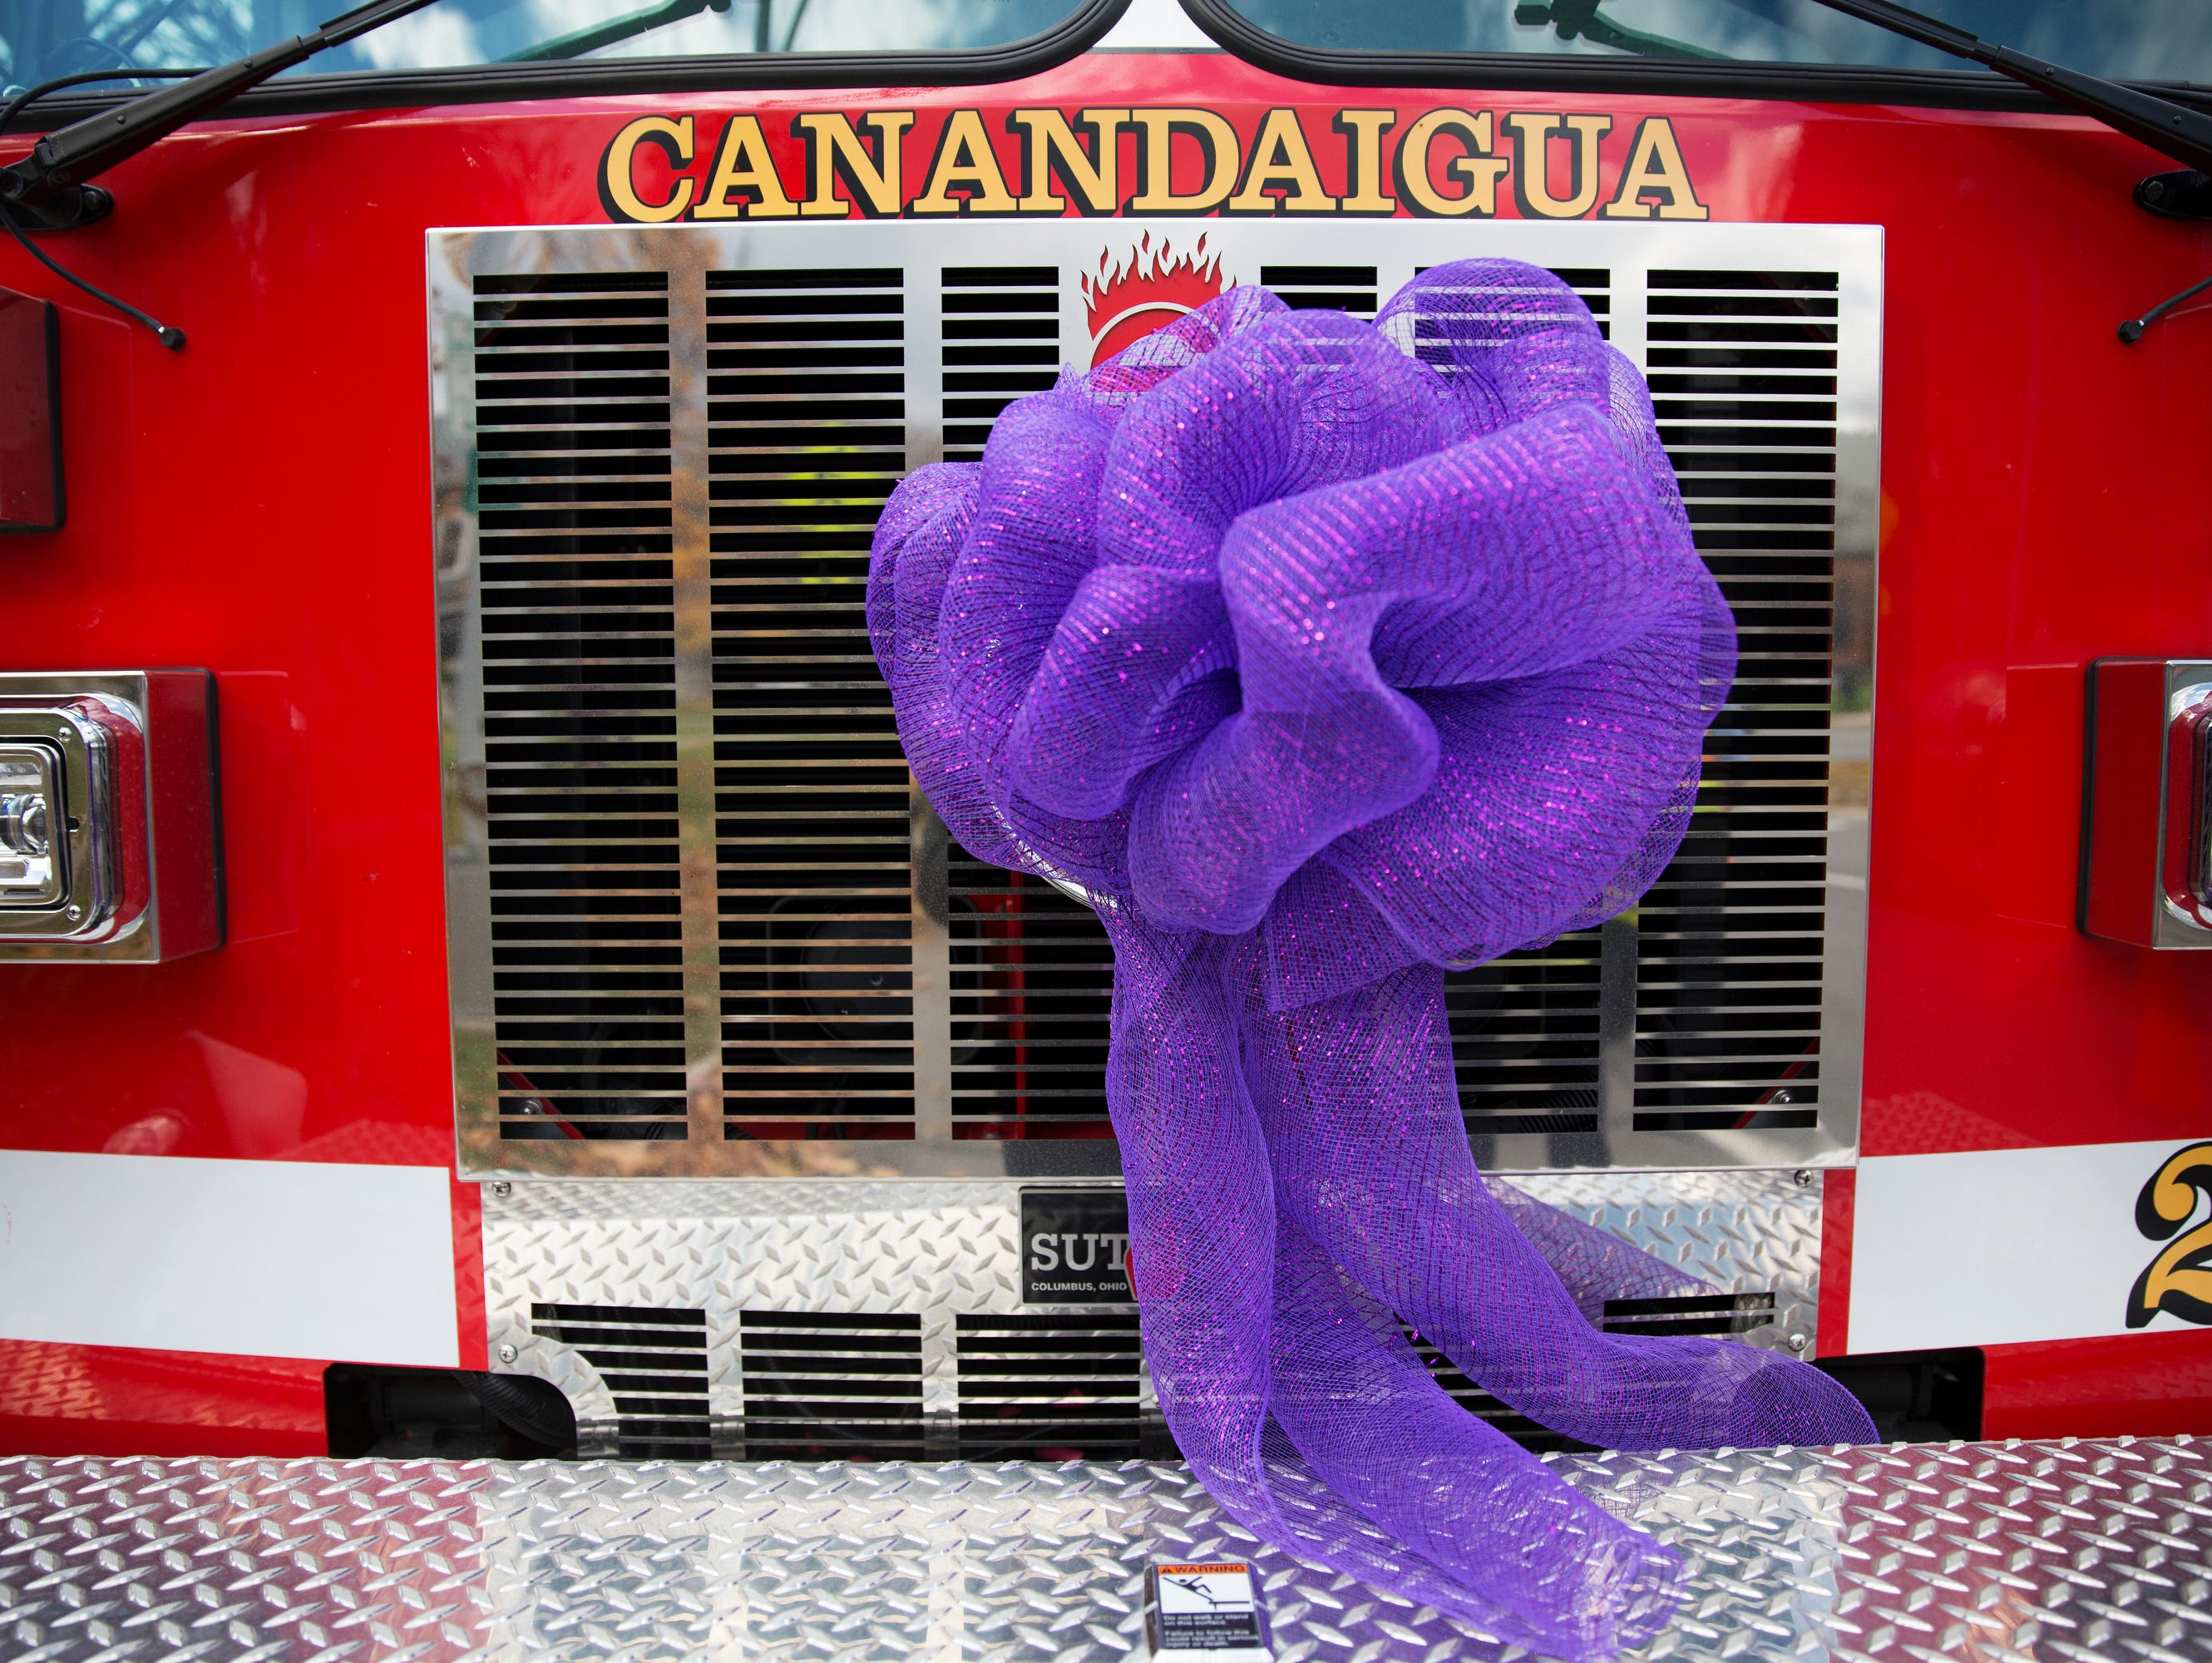 A Canandaigua fire truck is adorned with a purple bow outside of Courtney Wagner's funeral at St. Mary's Church in Canandaigua on Saturday, November 7, 2015.